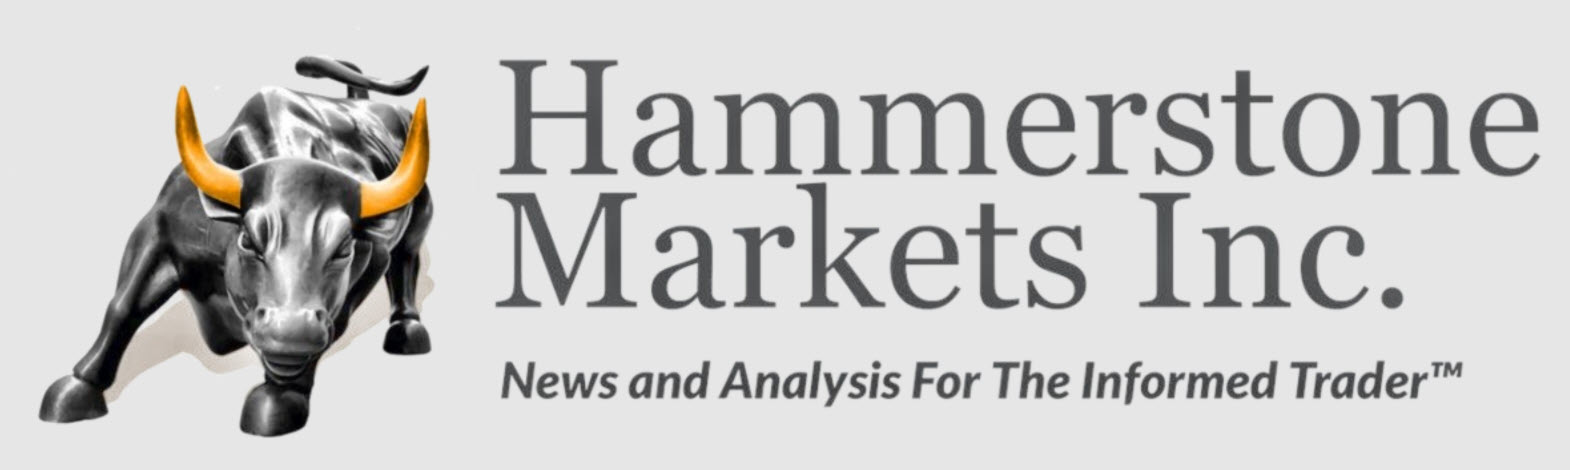 Hammerstone Markets Launches MarketTalk™ Platform For Individual Traders Via OpenFin